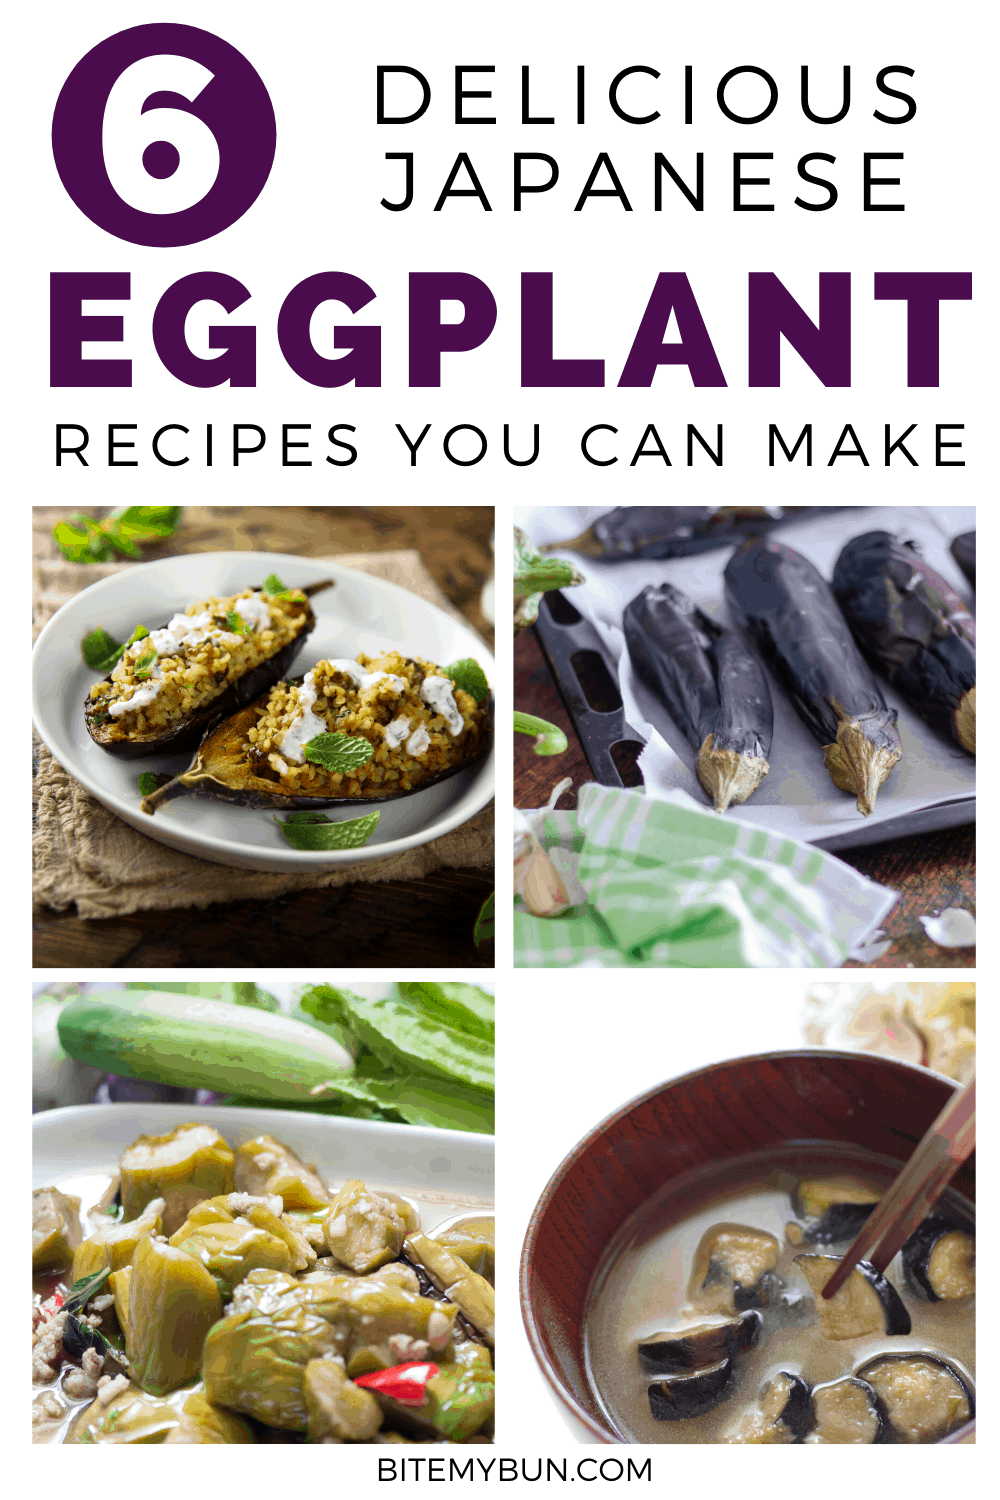 6 Delicious Japanese Eggplant Recipes